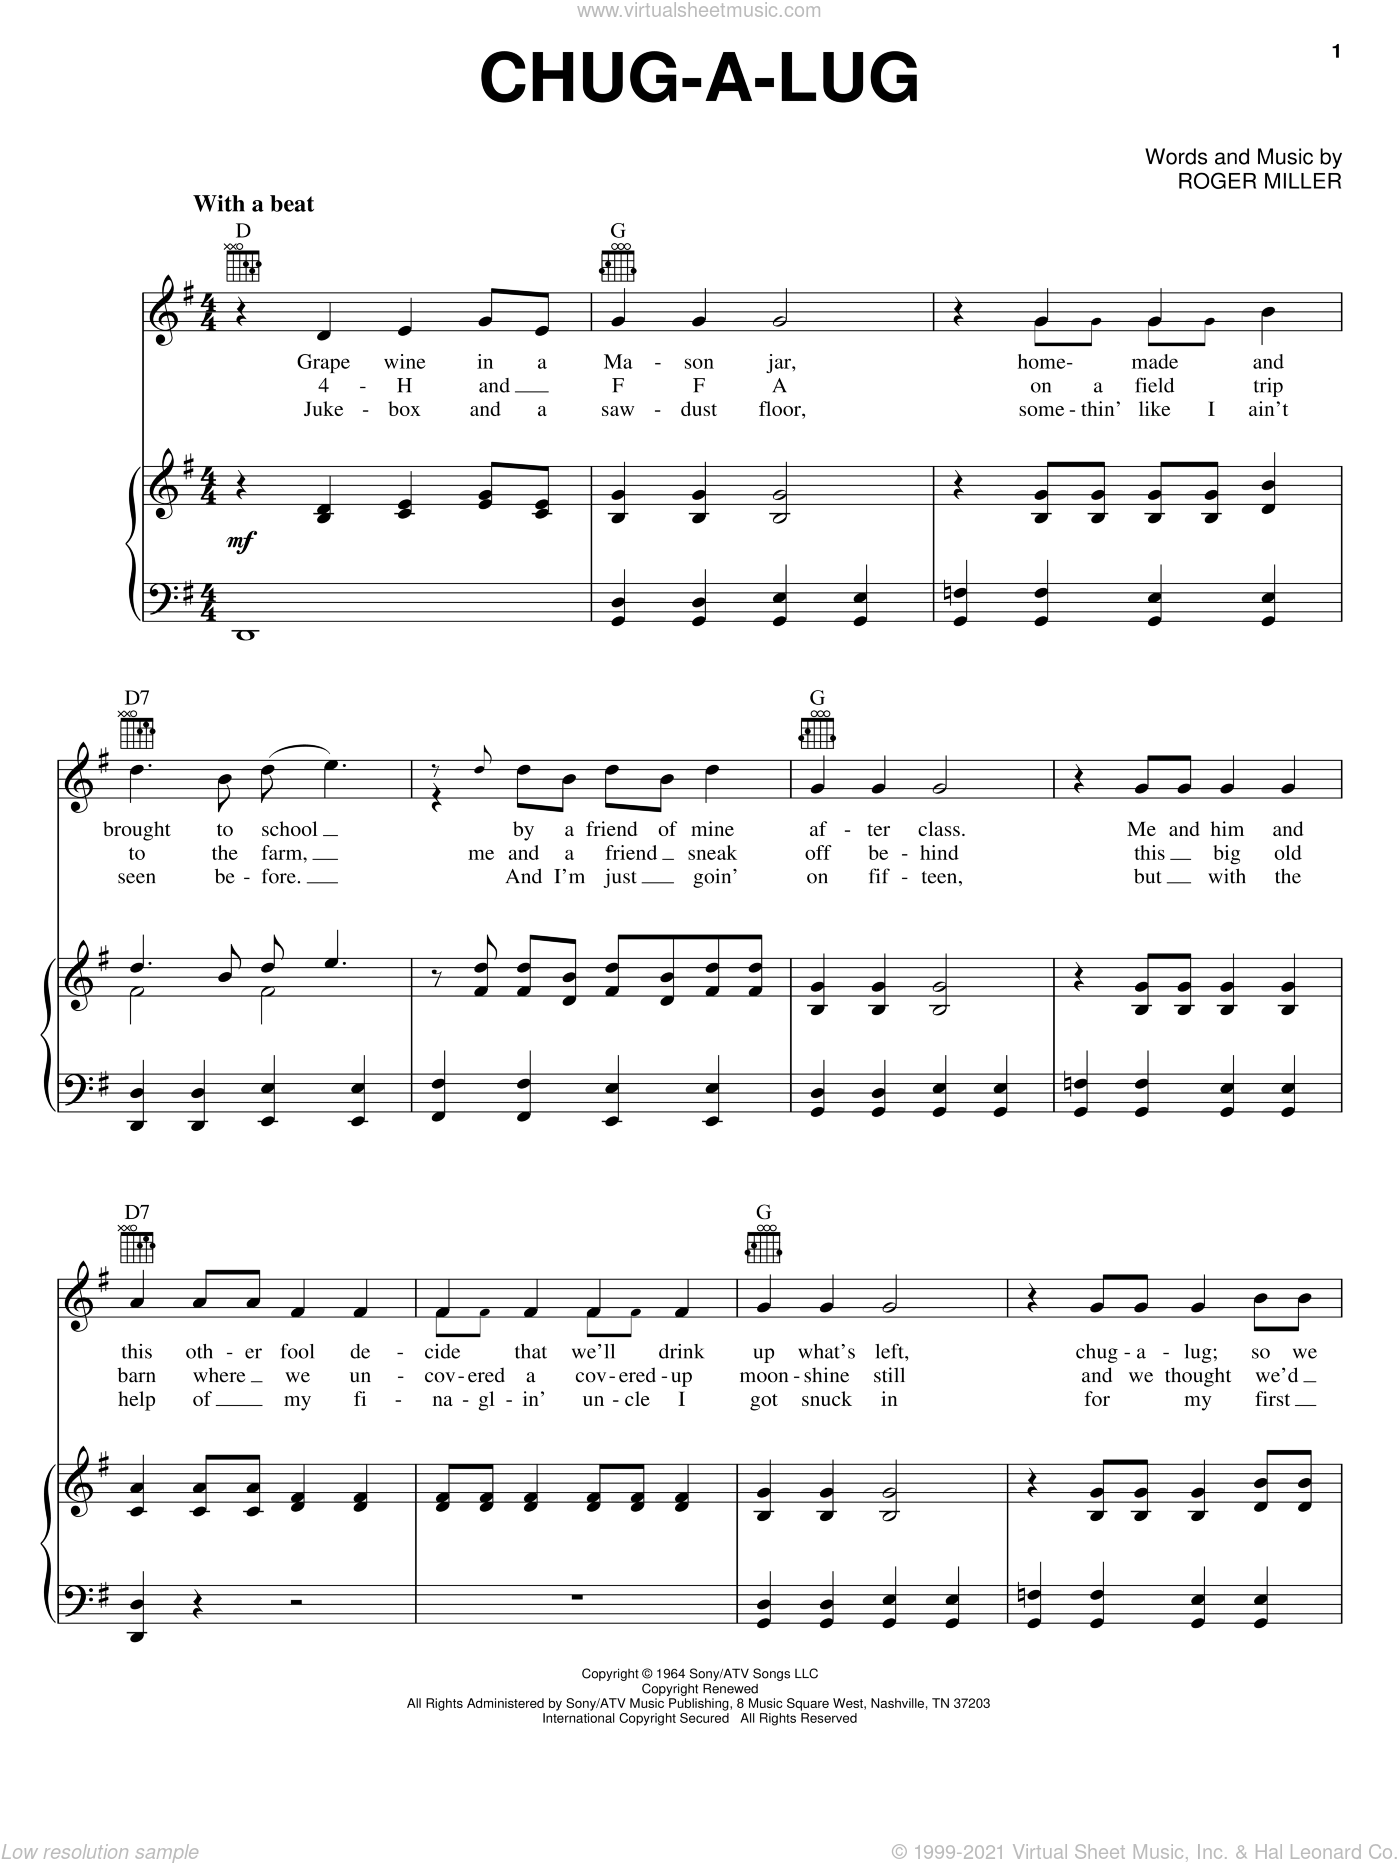 Chug-A-Lug sheet music for voice, piano or guitar by Roger Miller, intermediate skill level